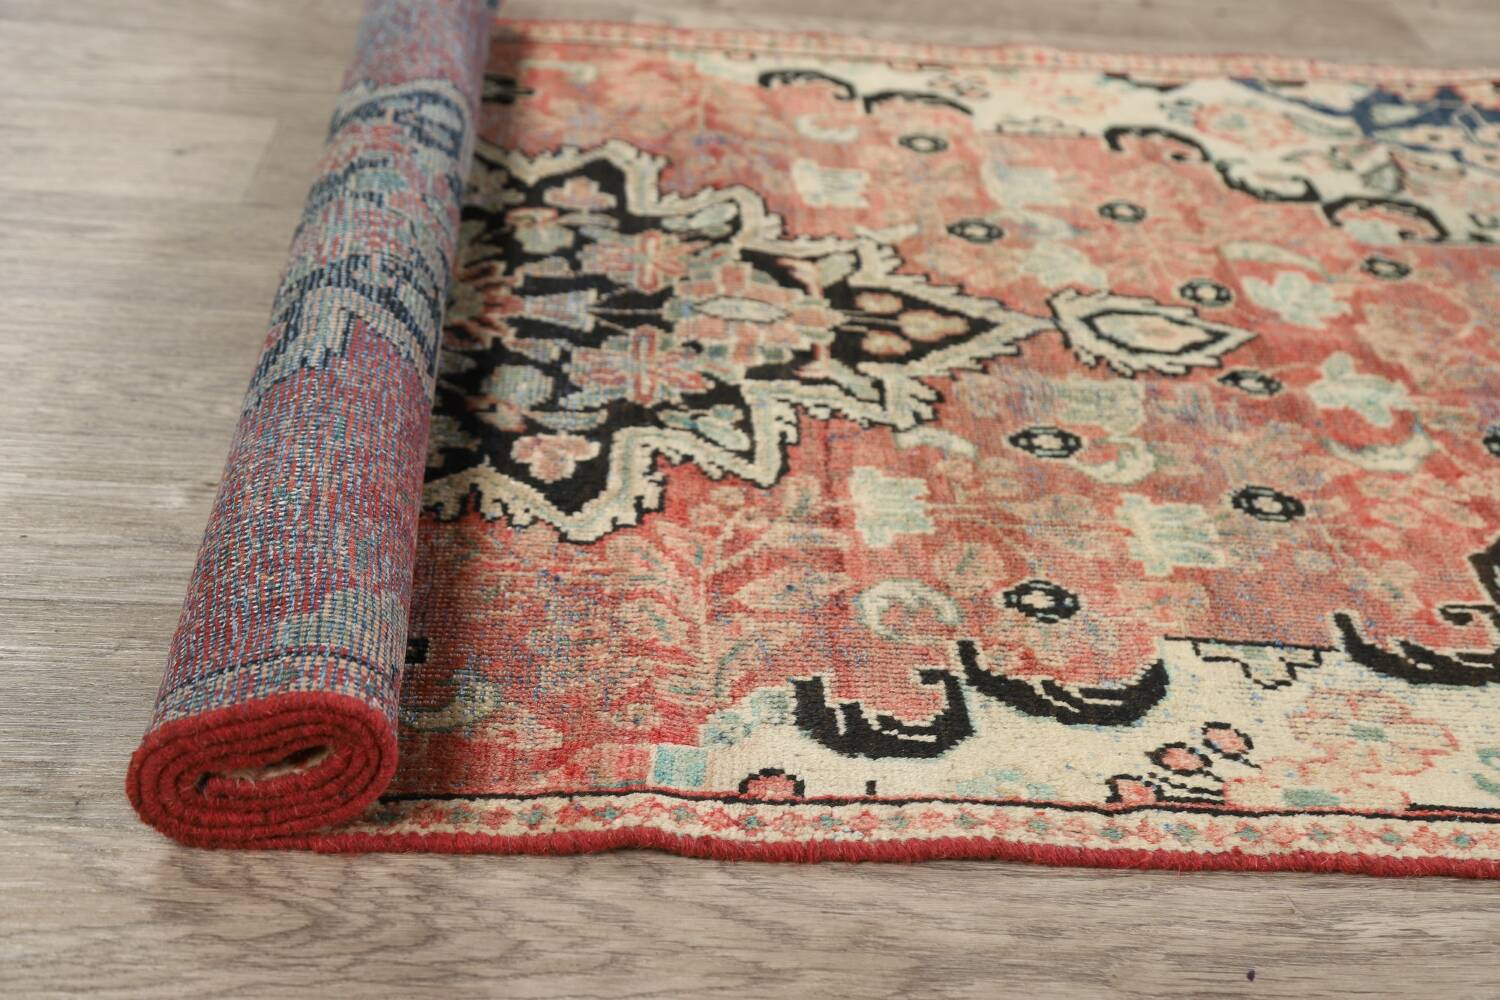 Antique Floral Mahal Persian Area Rug 3x6 image 20